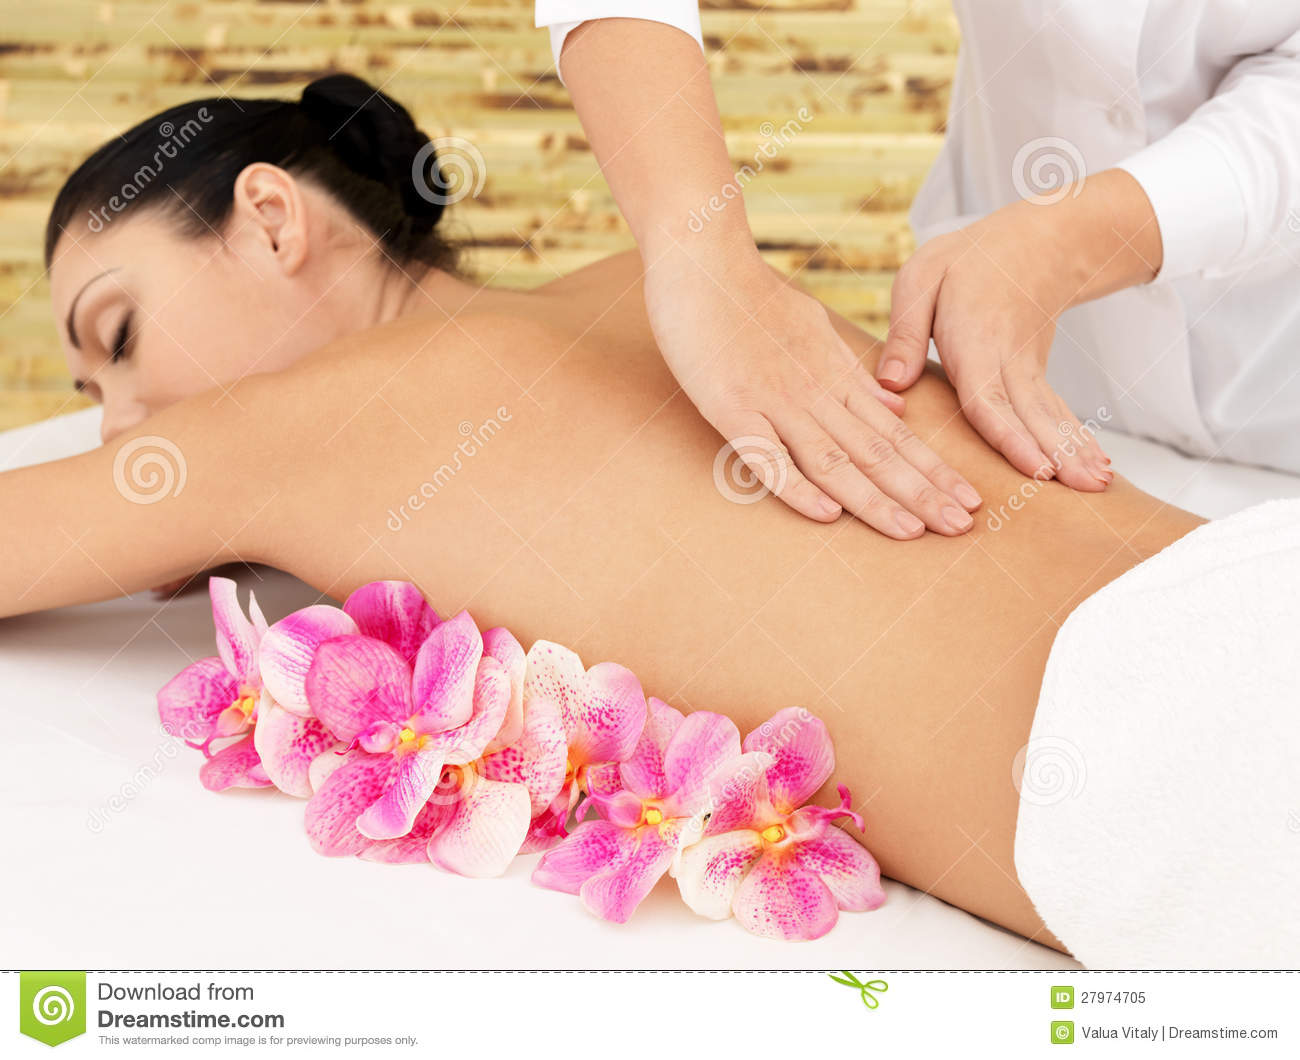 beauty spa massage kristianstad